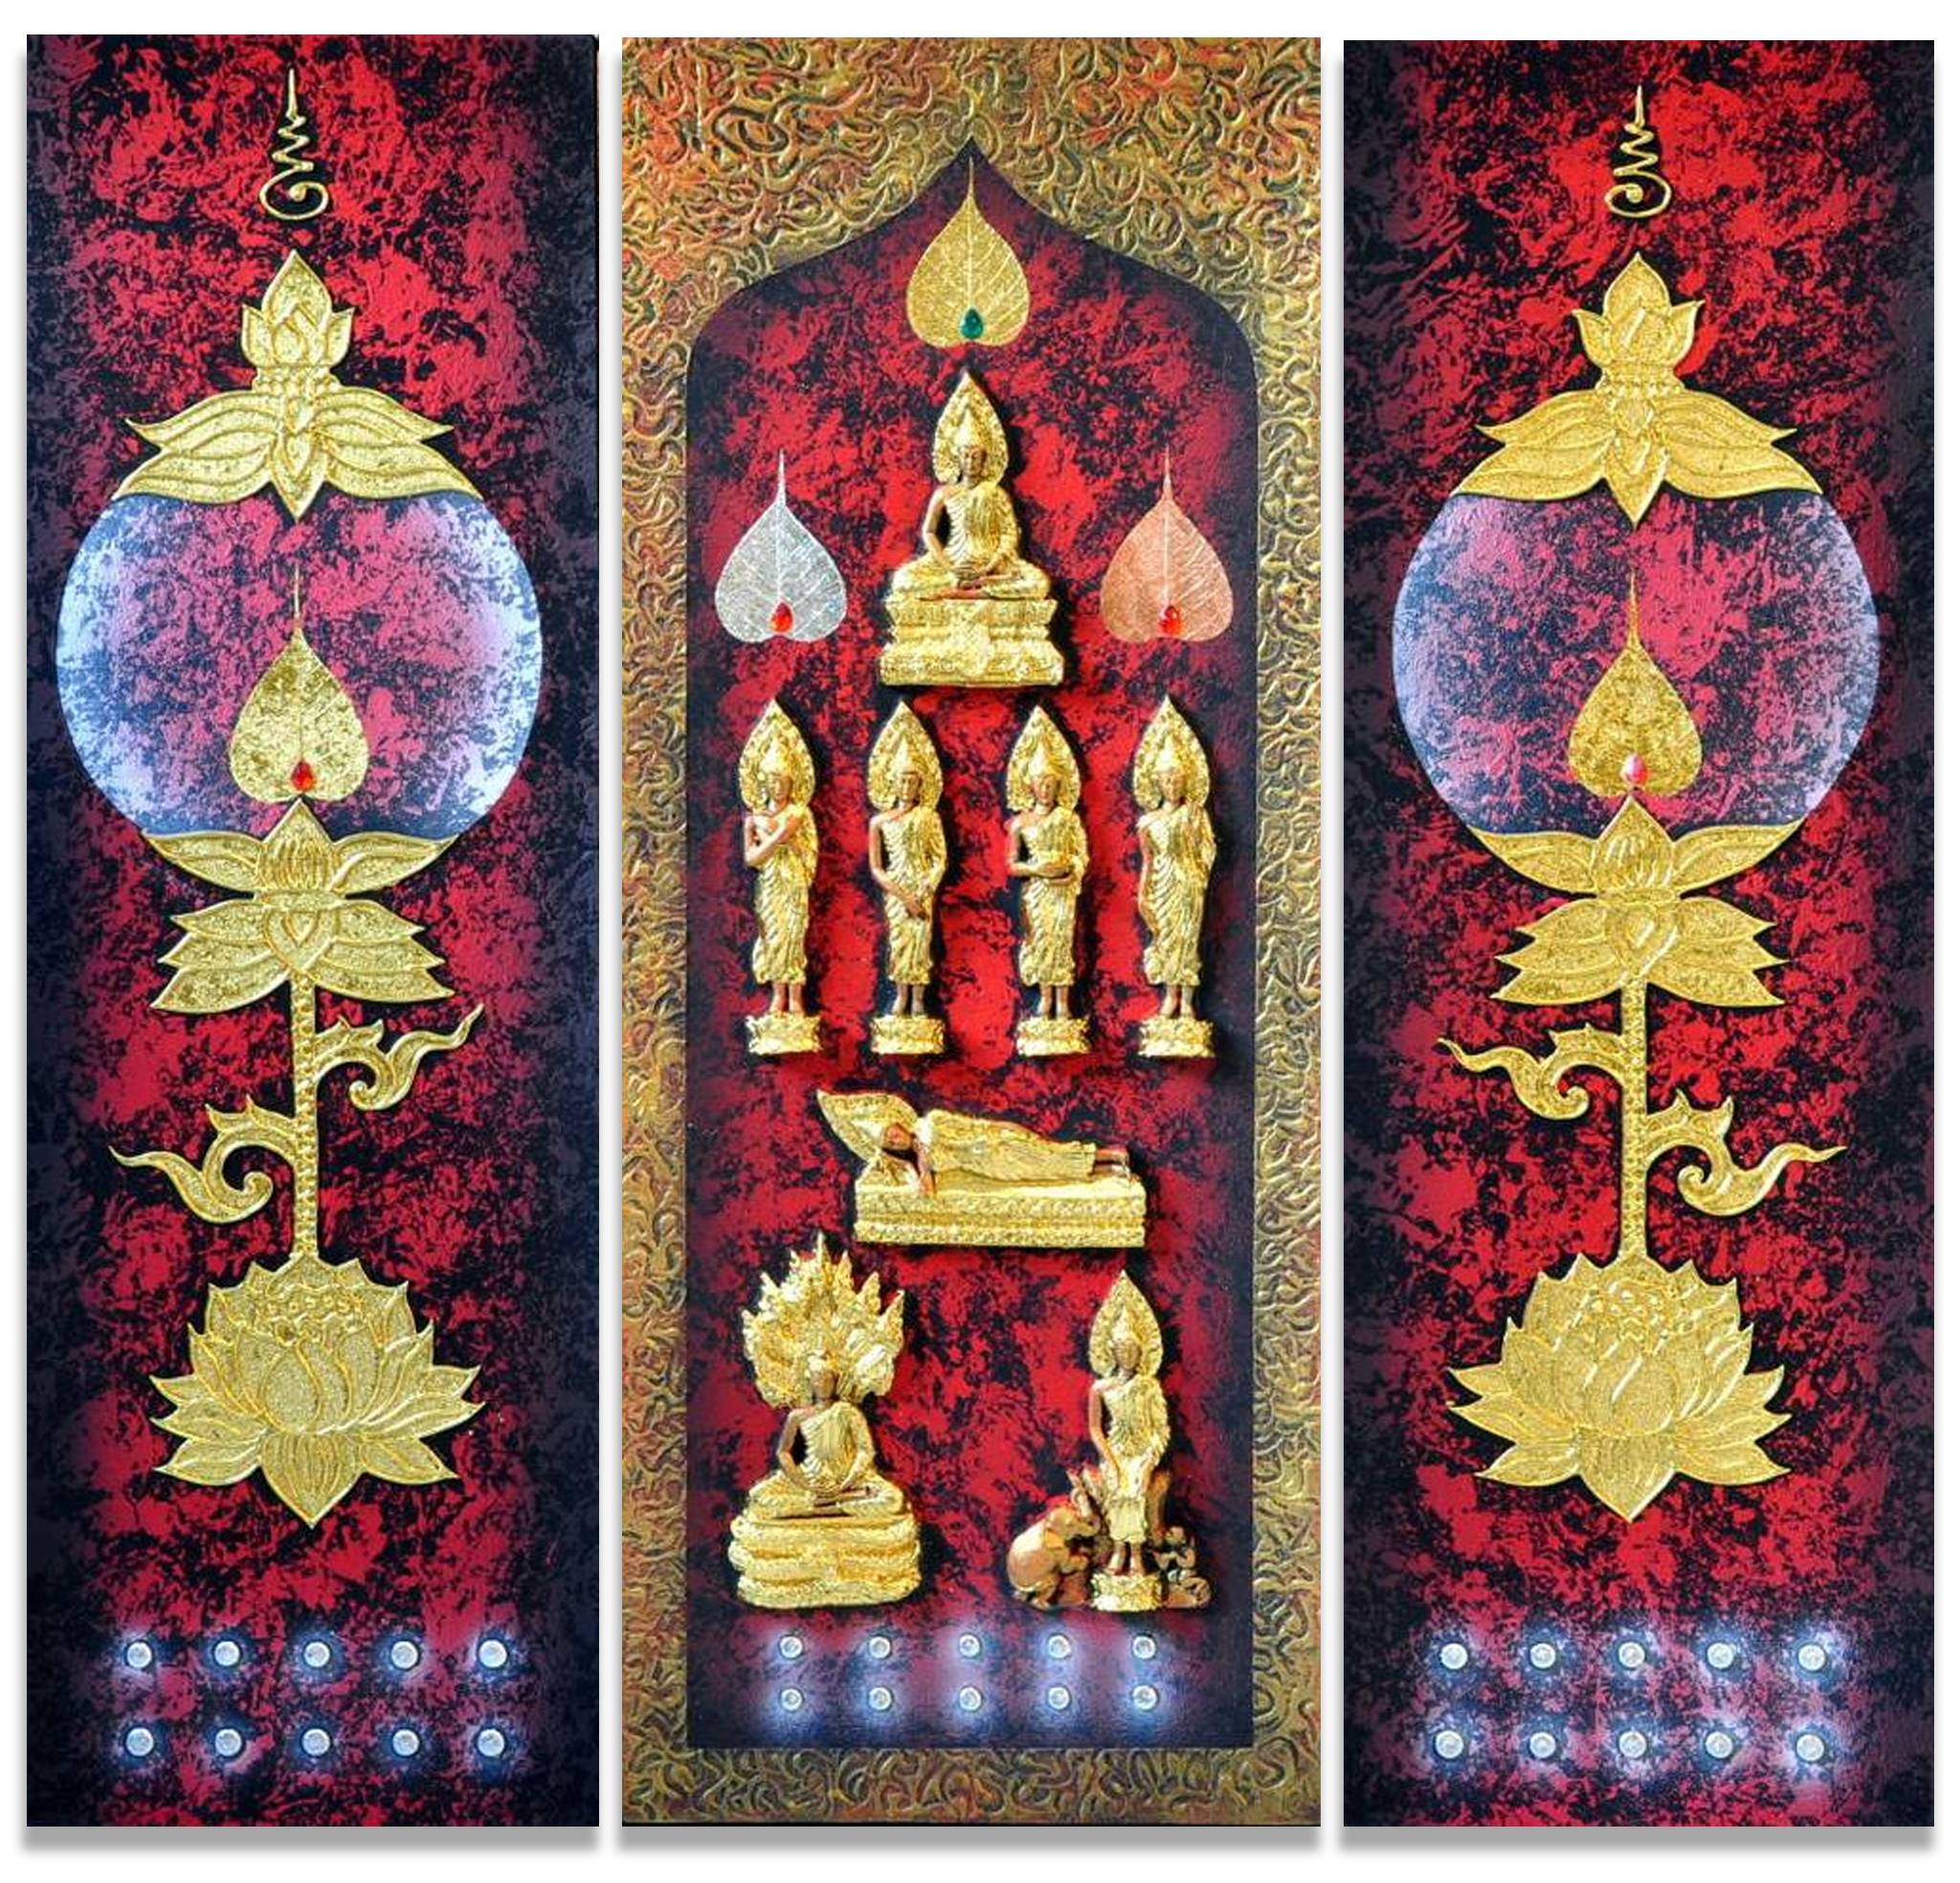 Buddhism Art 3D Seven Day Postures | Royal Thai Art In Most Up To Date 3D Buddha Wall Art (View 9 of 20)